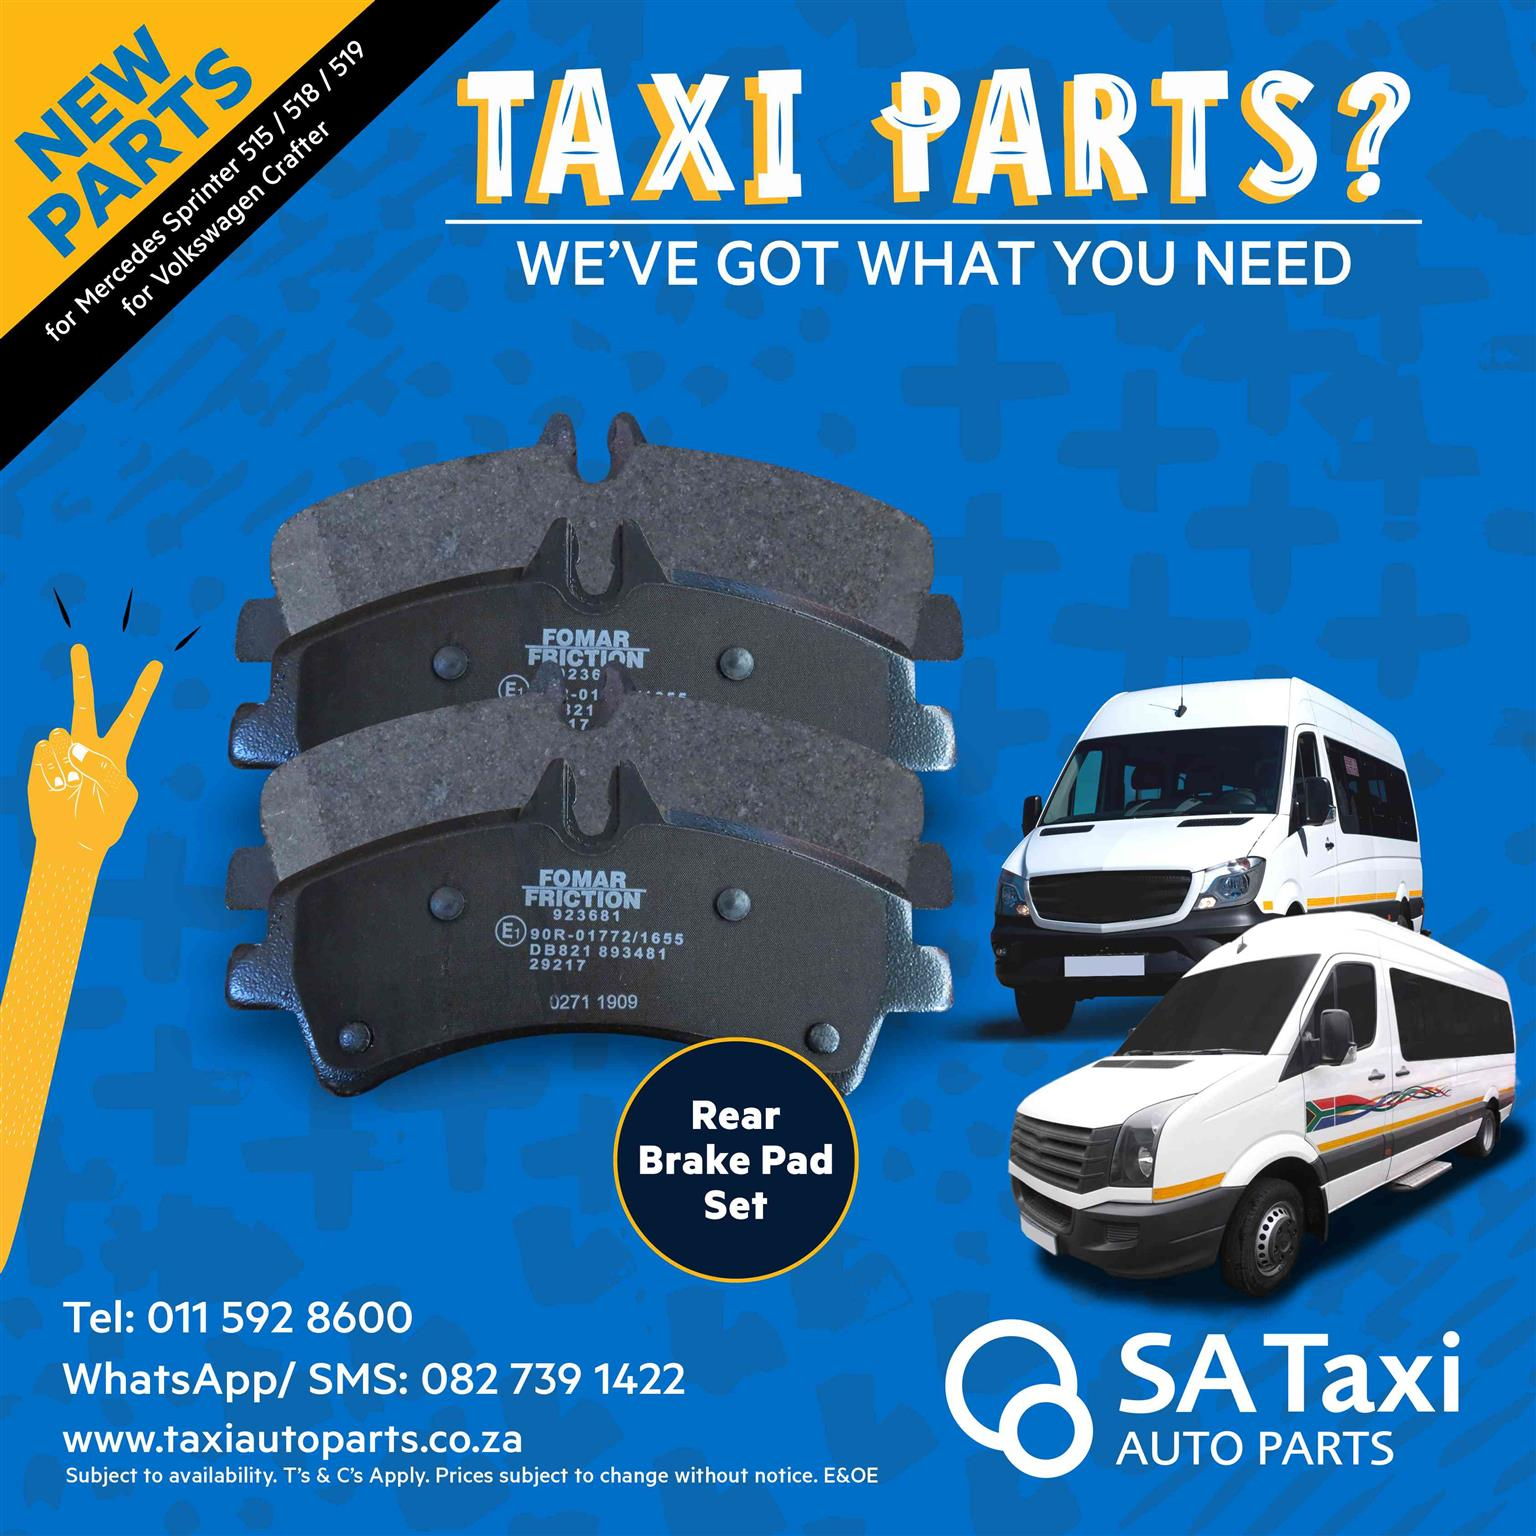 New Rear Brake Pad Set suitable for Mercedes Sprinter 515 / 518 / 519 & Volkswagen Crafter